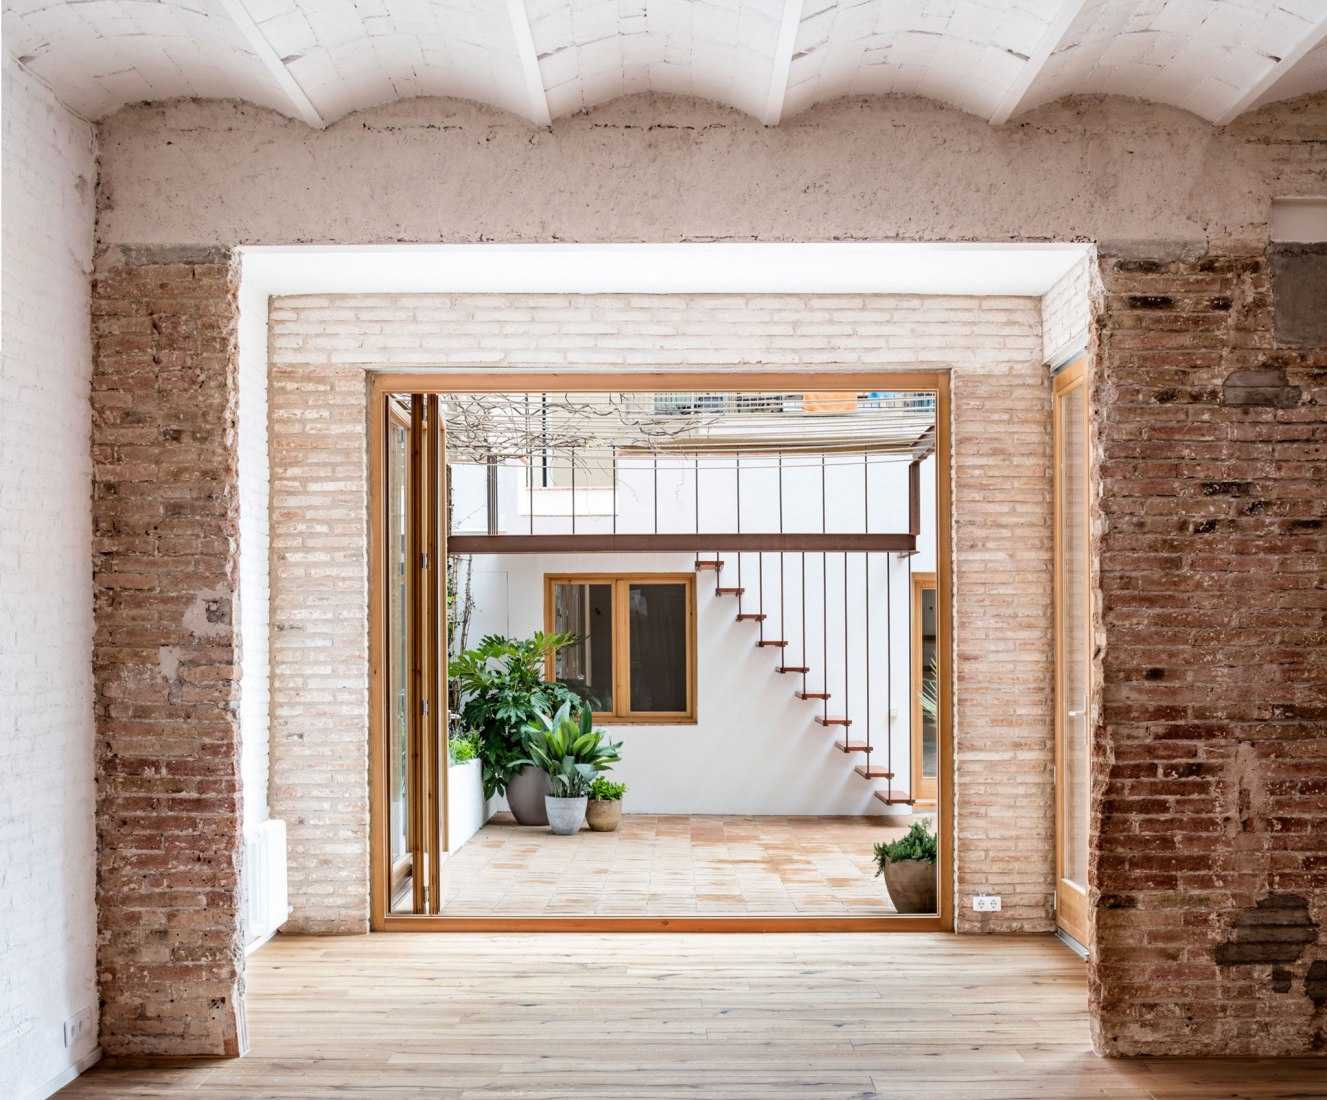 Interior. Gallery-House by Carles Enrich. Photograph © Adrià Goula